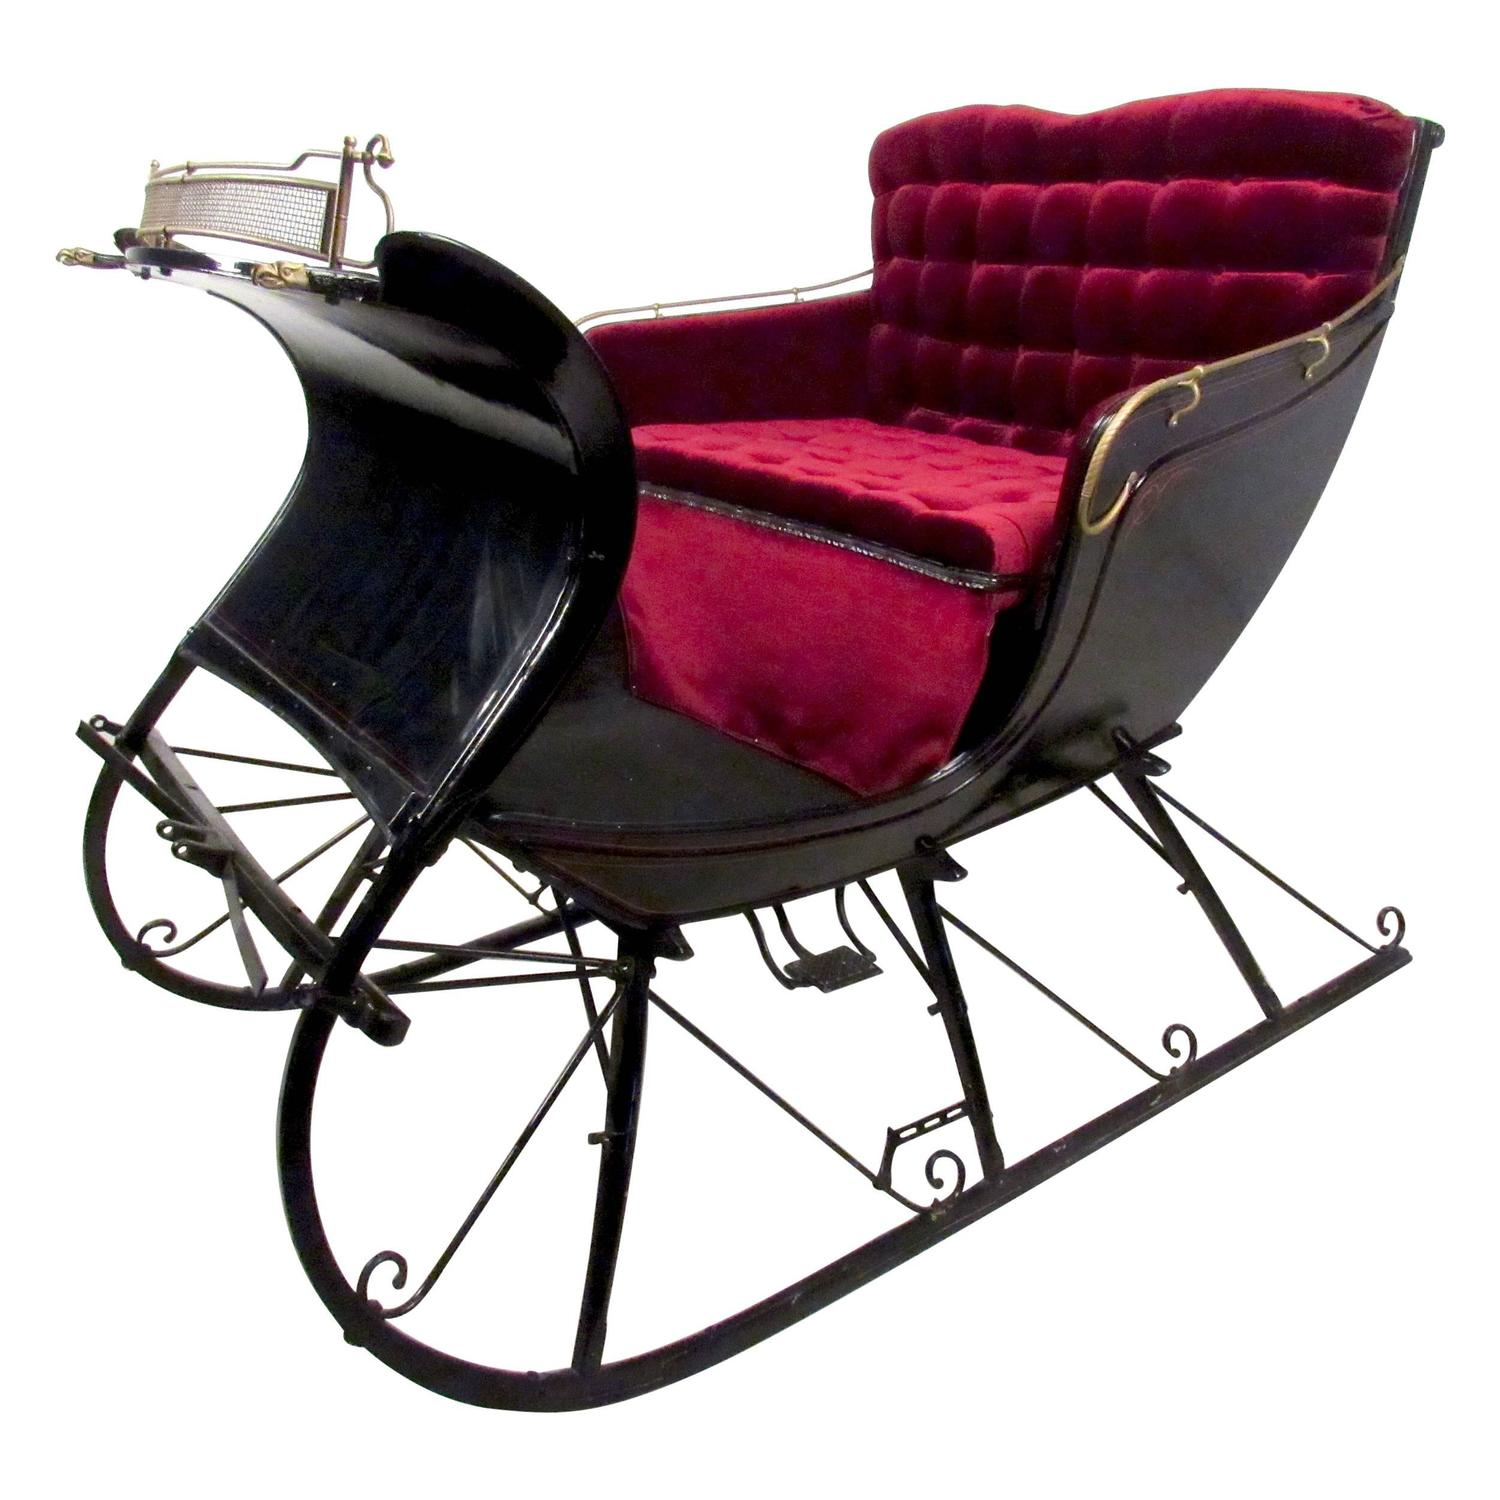 Horse Drawn Cutter Sleigh At 1stdibs